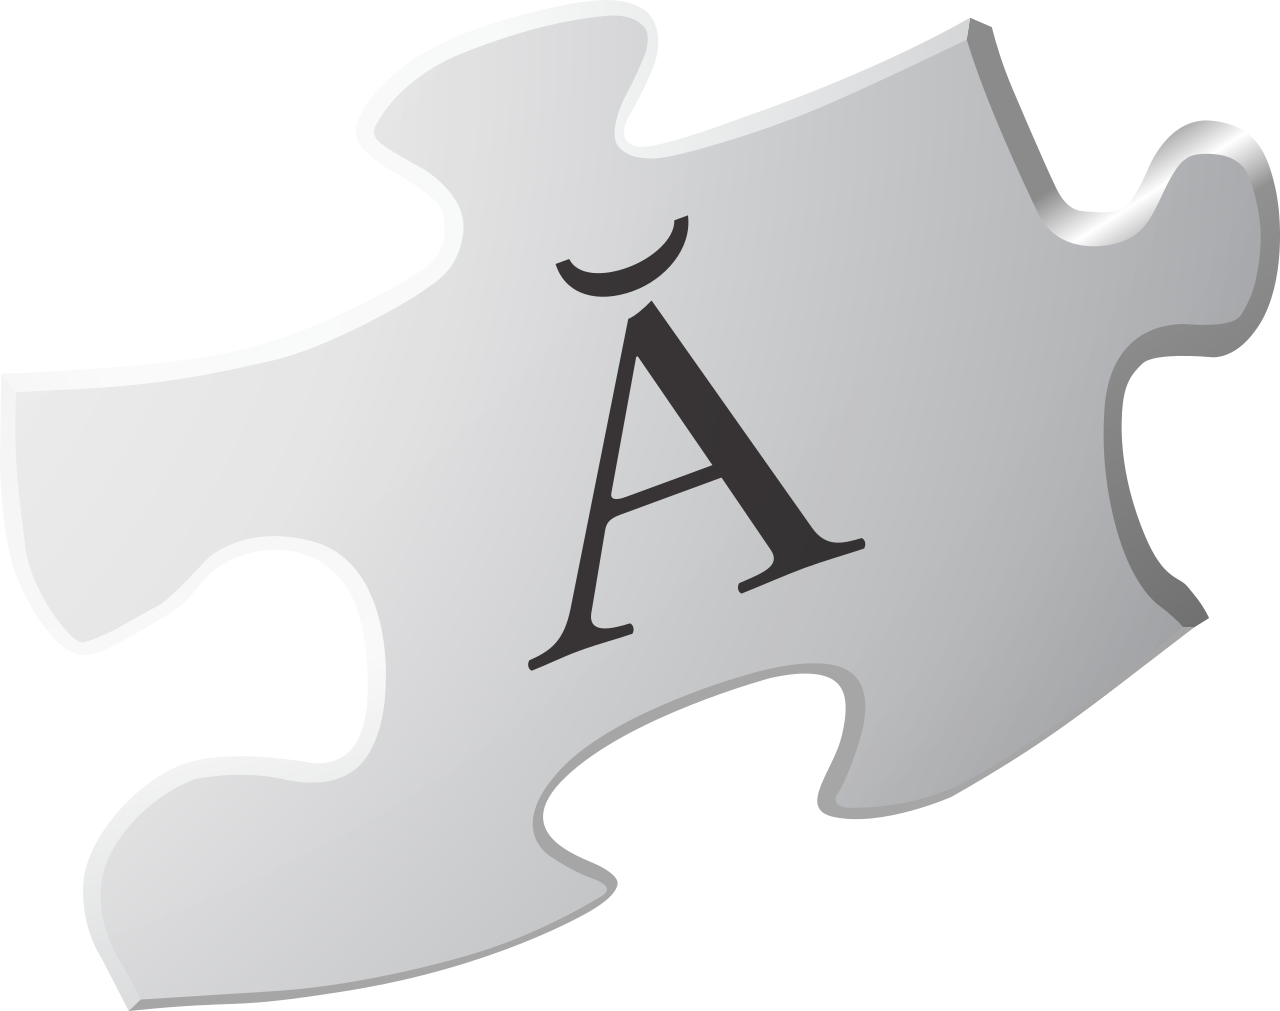 Puzzle transparent logo. File wikipedia v piece